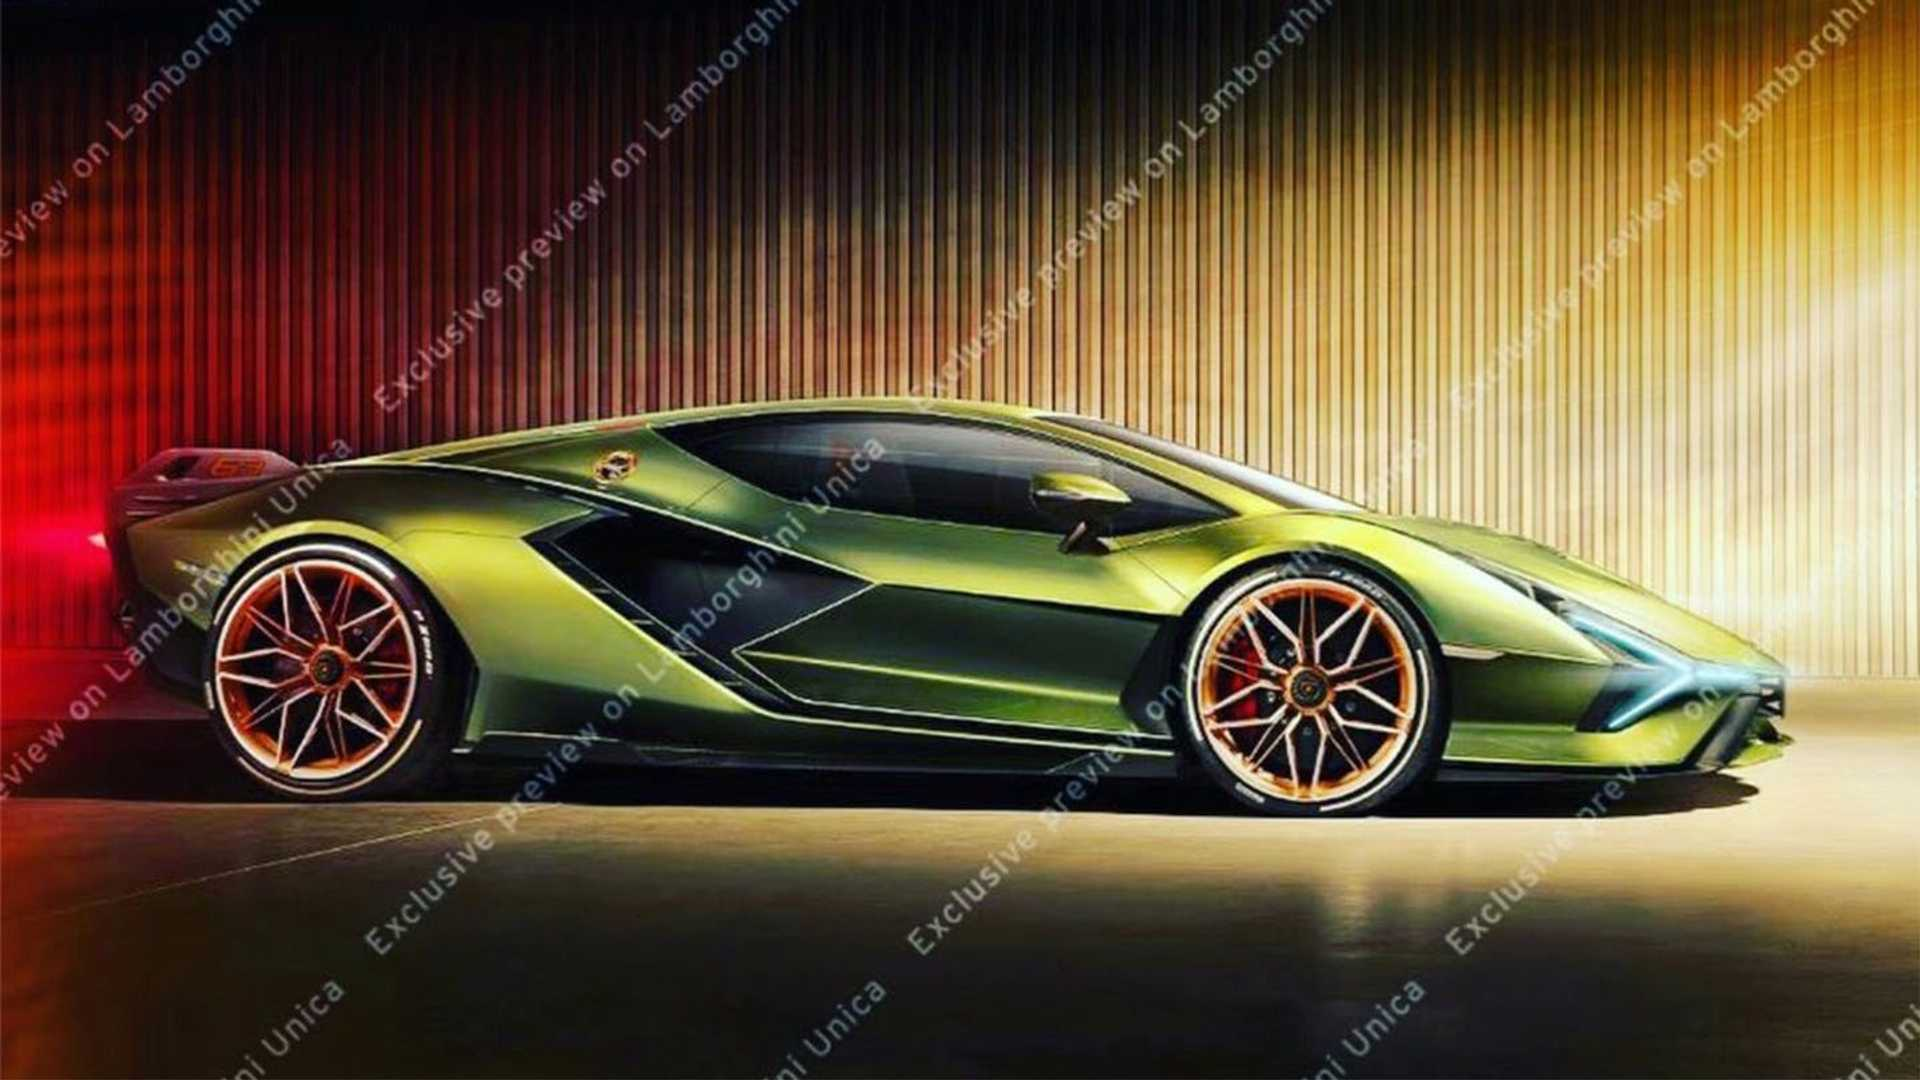 Lamborghini Sian Officially Debuts Tomorrow, But You Can See It Now